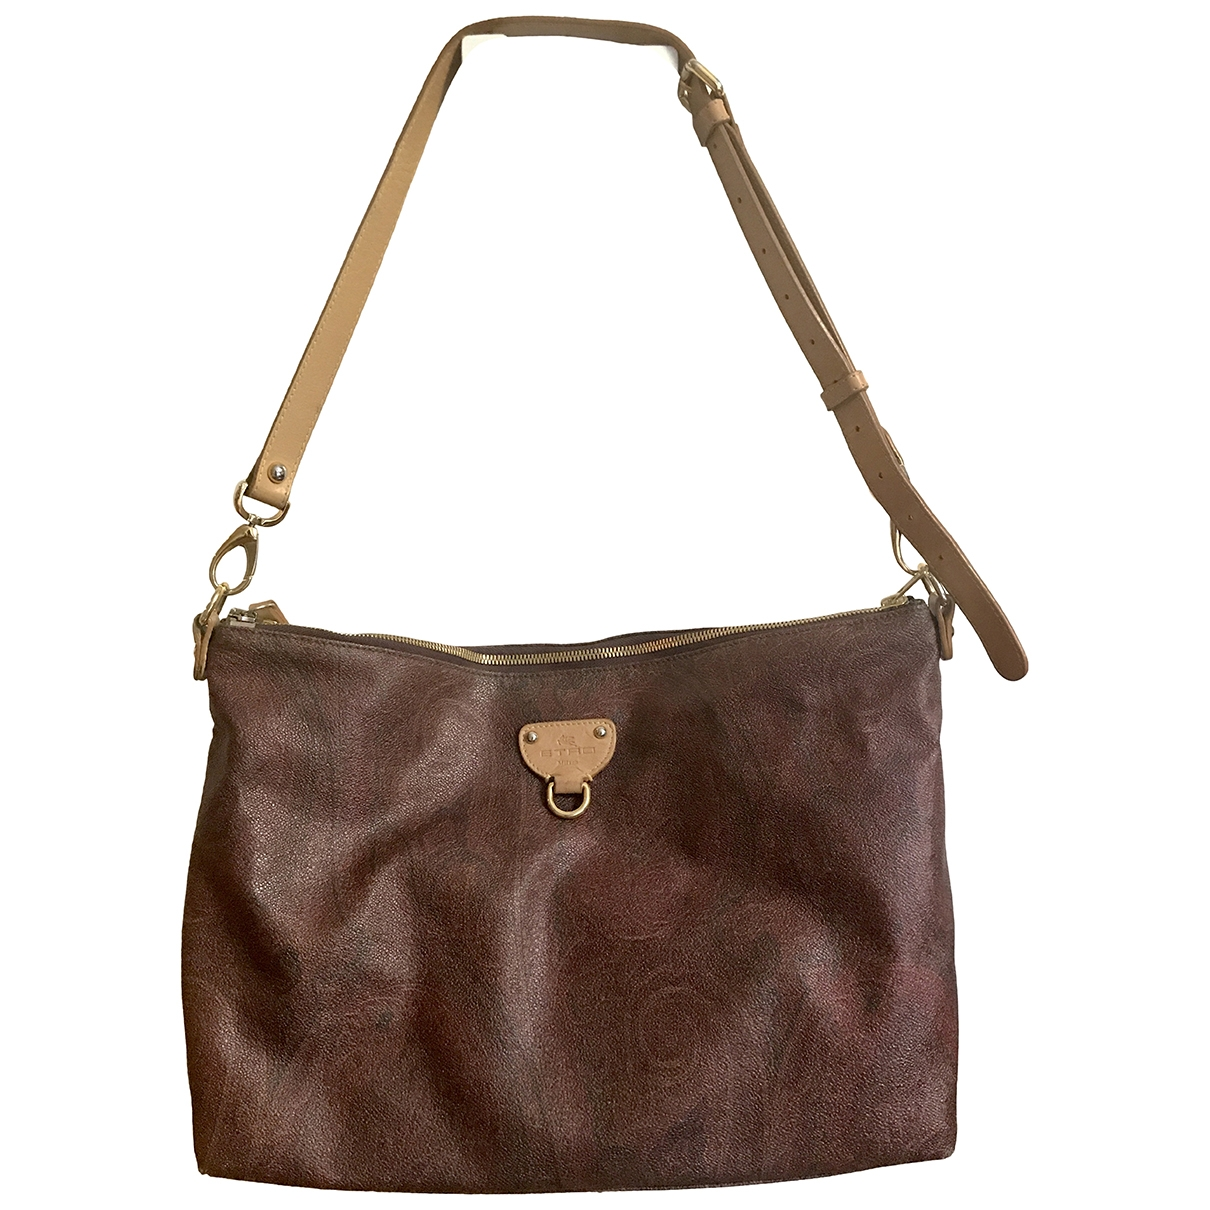 Etro \N Brown Leather handbag for Women \N